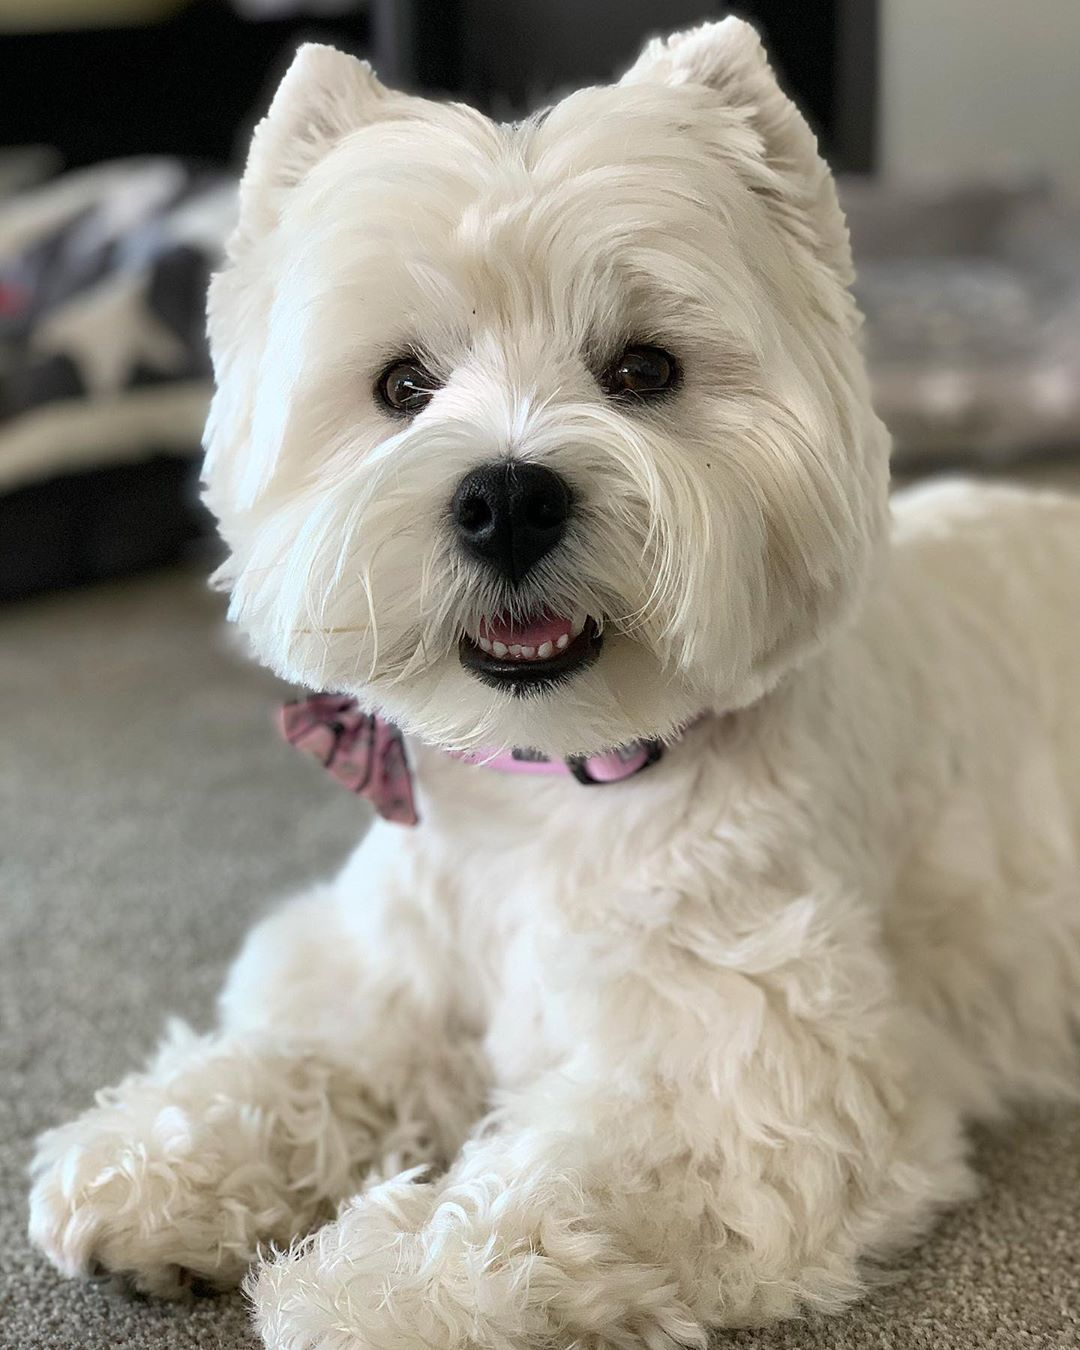 Our Sweet Friend Lola Lola Our Westie Bestie Challenged Us To